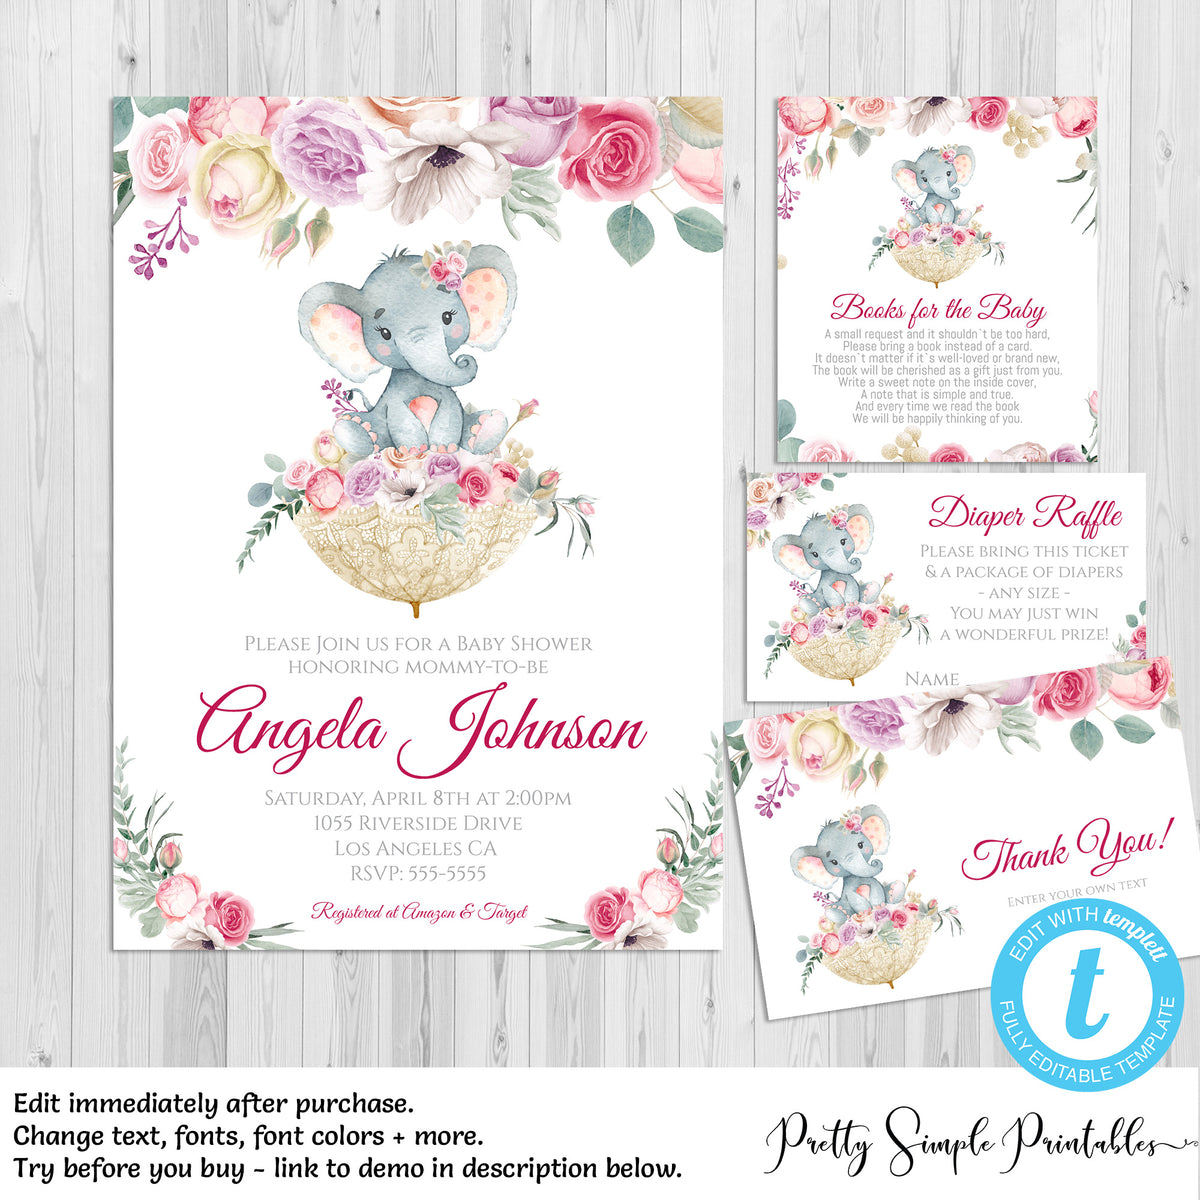 Girl Elephant Baby Shower Invitation Bundle Floral And Lace Umbrella Pretty Simple Printables